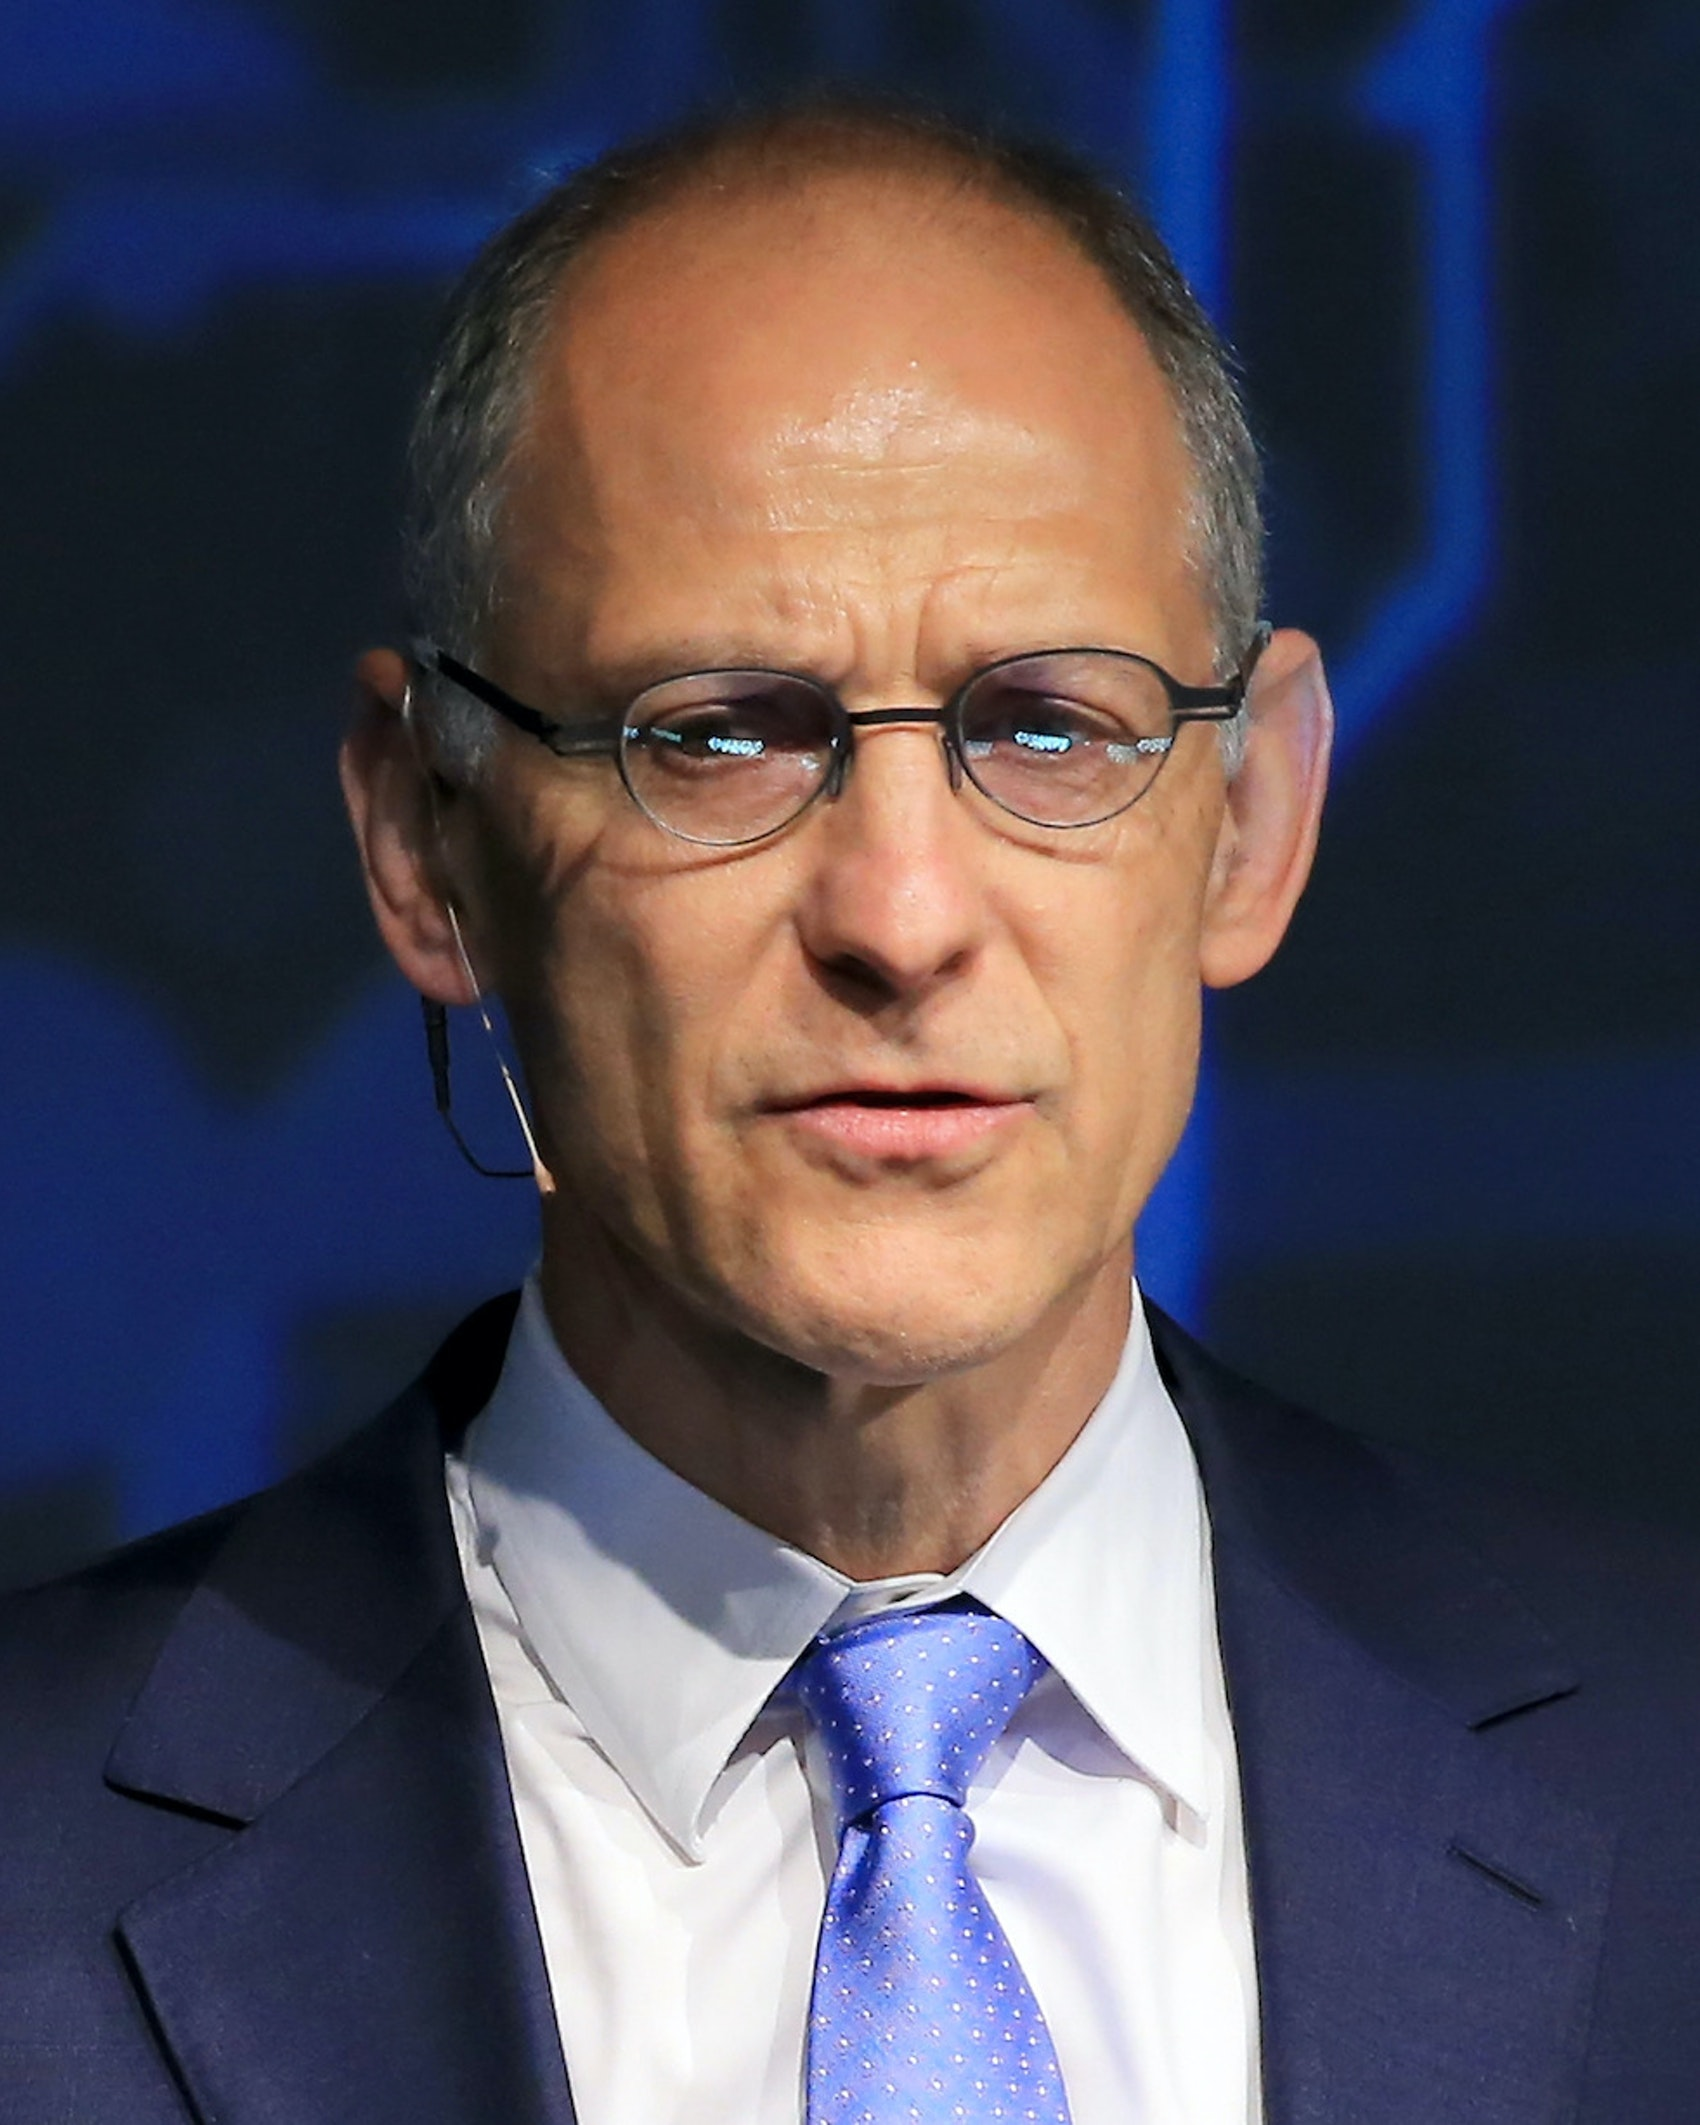 Dr. Ezekiel Emanuel speaks onstage at the Klick Health Ideas Exchange on June 15, 2015 in Philadelphia, Pennsylvania. (Photo by Neilson Barnard/Getty Images for Klick Health)